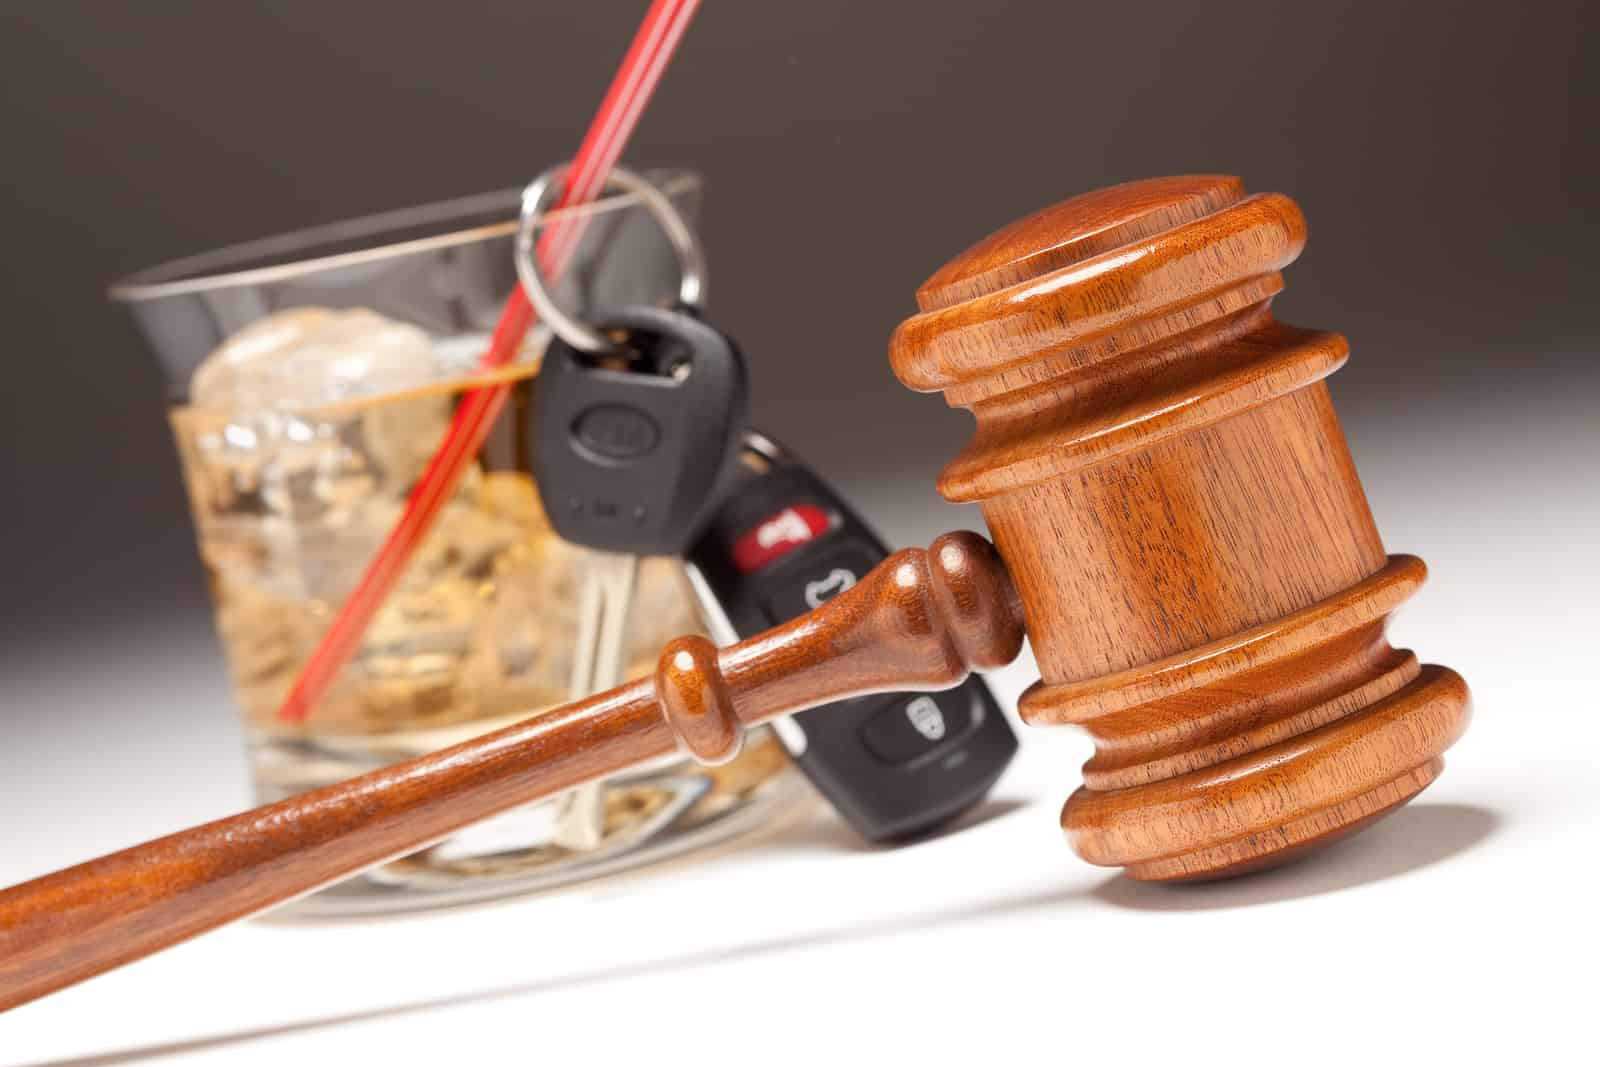 DUI Gavel - Alcohol: Part of Summertime Culture or an Unreasonable Risk?